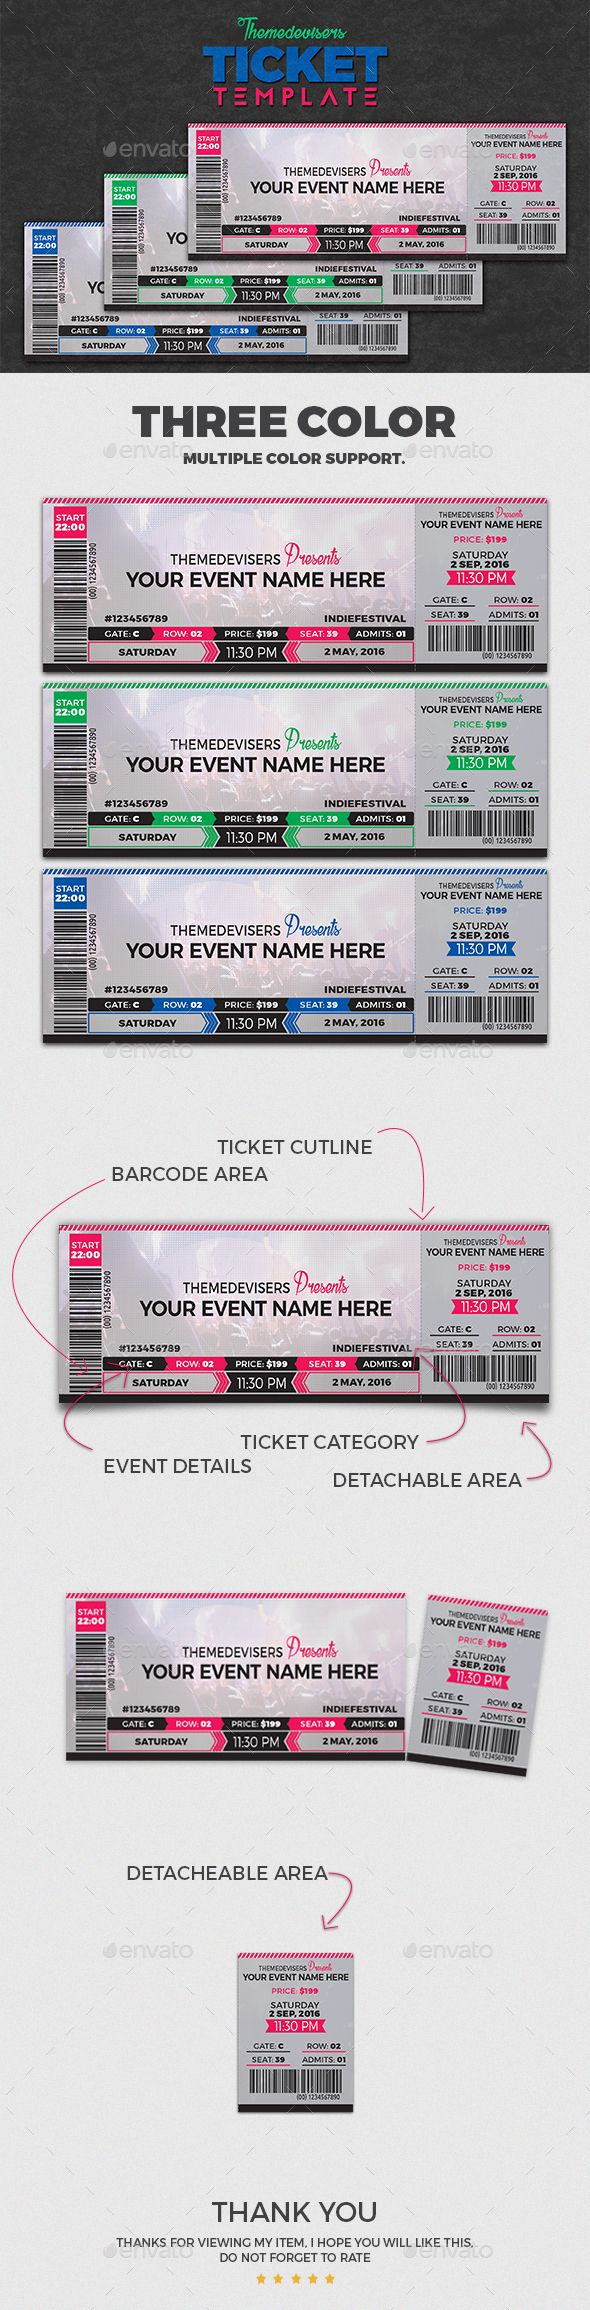 Concert / Event Ticket Template Can be used for an innovative Event invitation Card as well- Be creative.  Download http://graphicriver.net/item/concert-event-ticket/15815529?ref=themedevisers